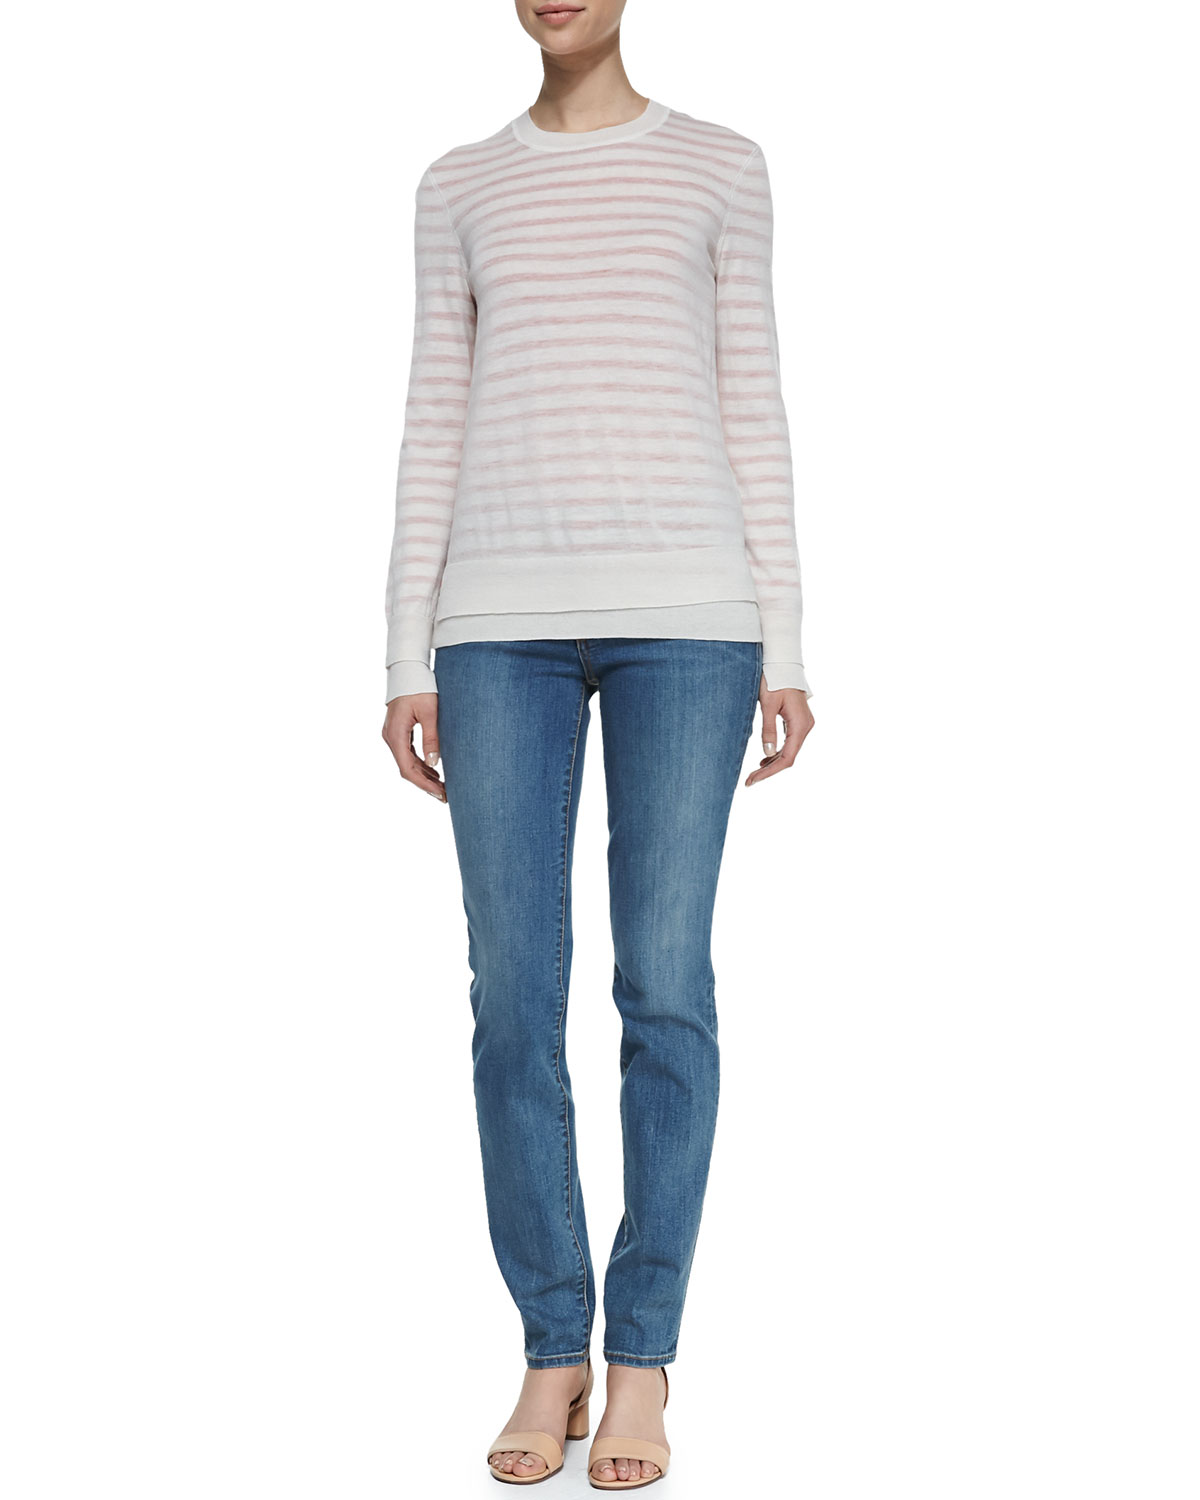 Naia Crewneck Wool Sweater & Super Skinny Denim Jeans